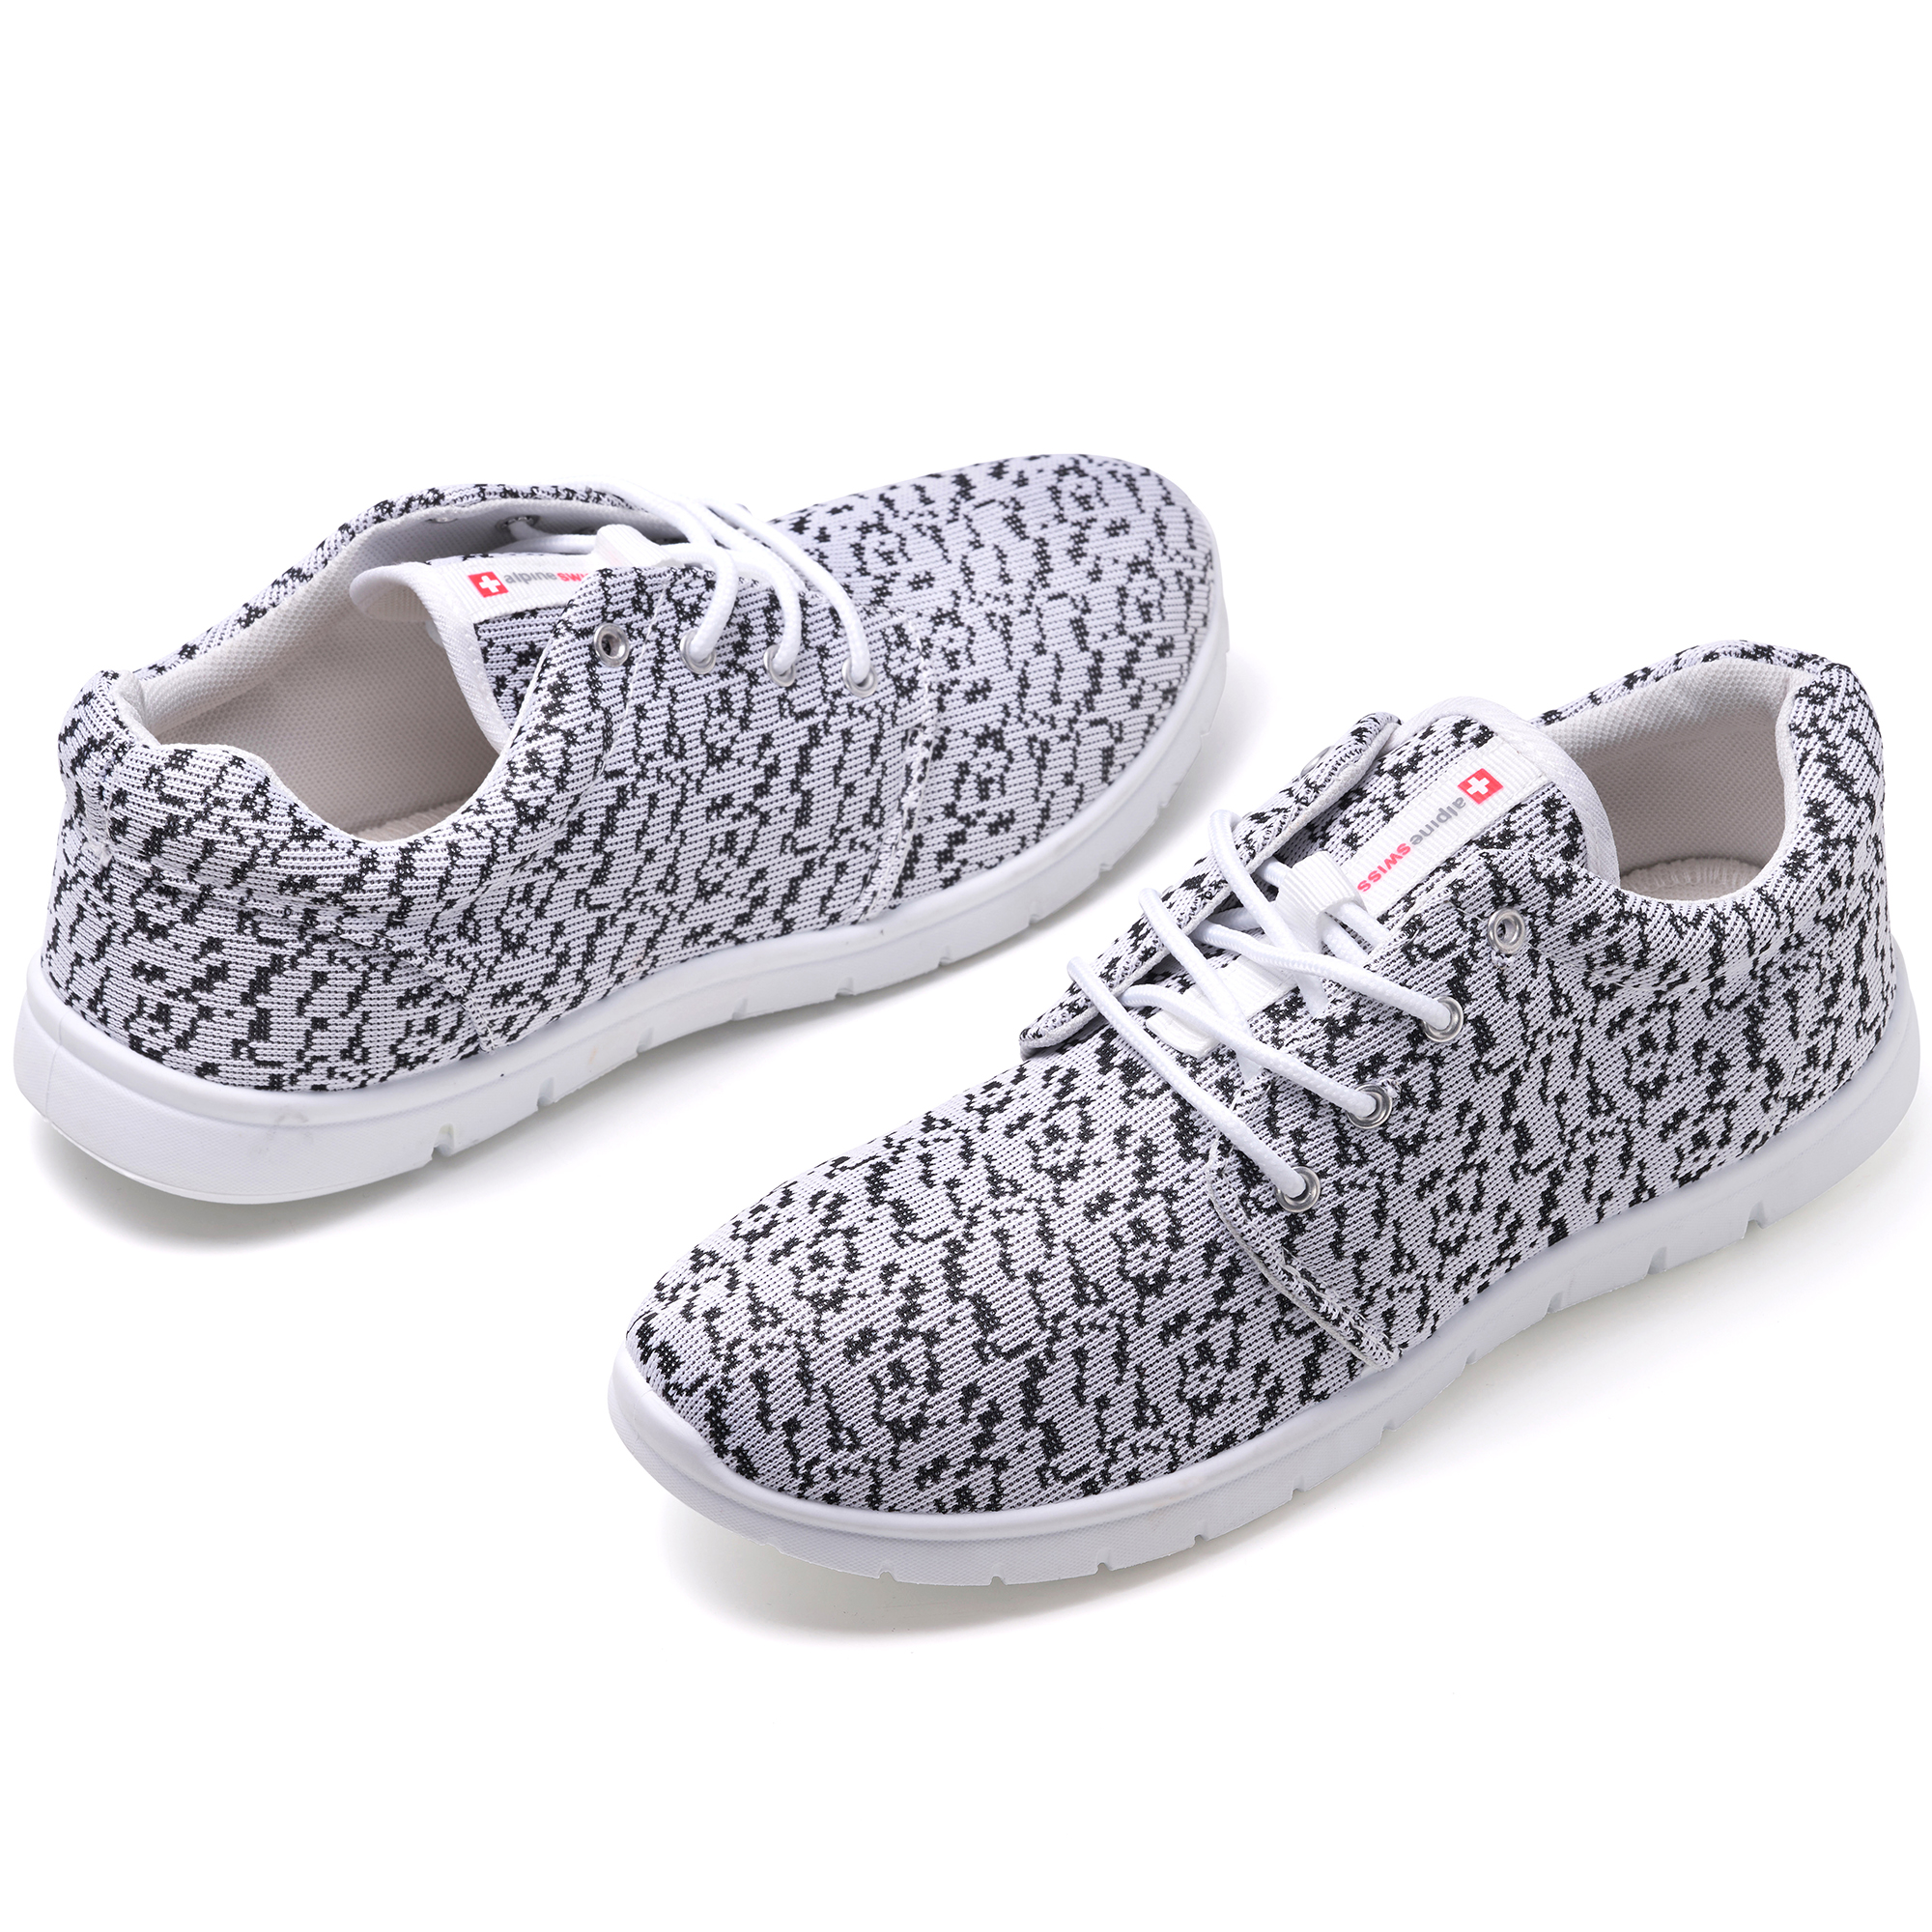 Alpine-Swiss-Kilian-Mesh-Sneakers-Casual-Shoes-Mens-amp-Womens-Lightweight-Trainer thumbnail 86